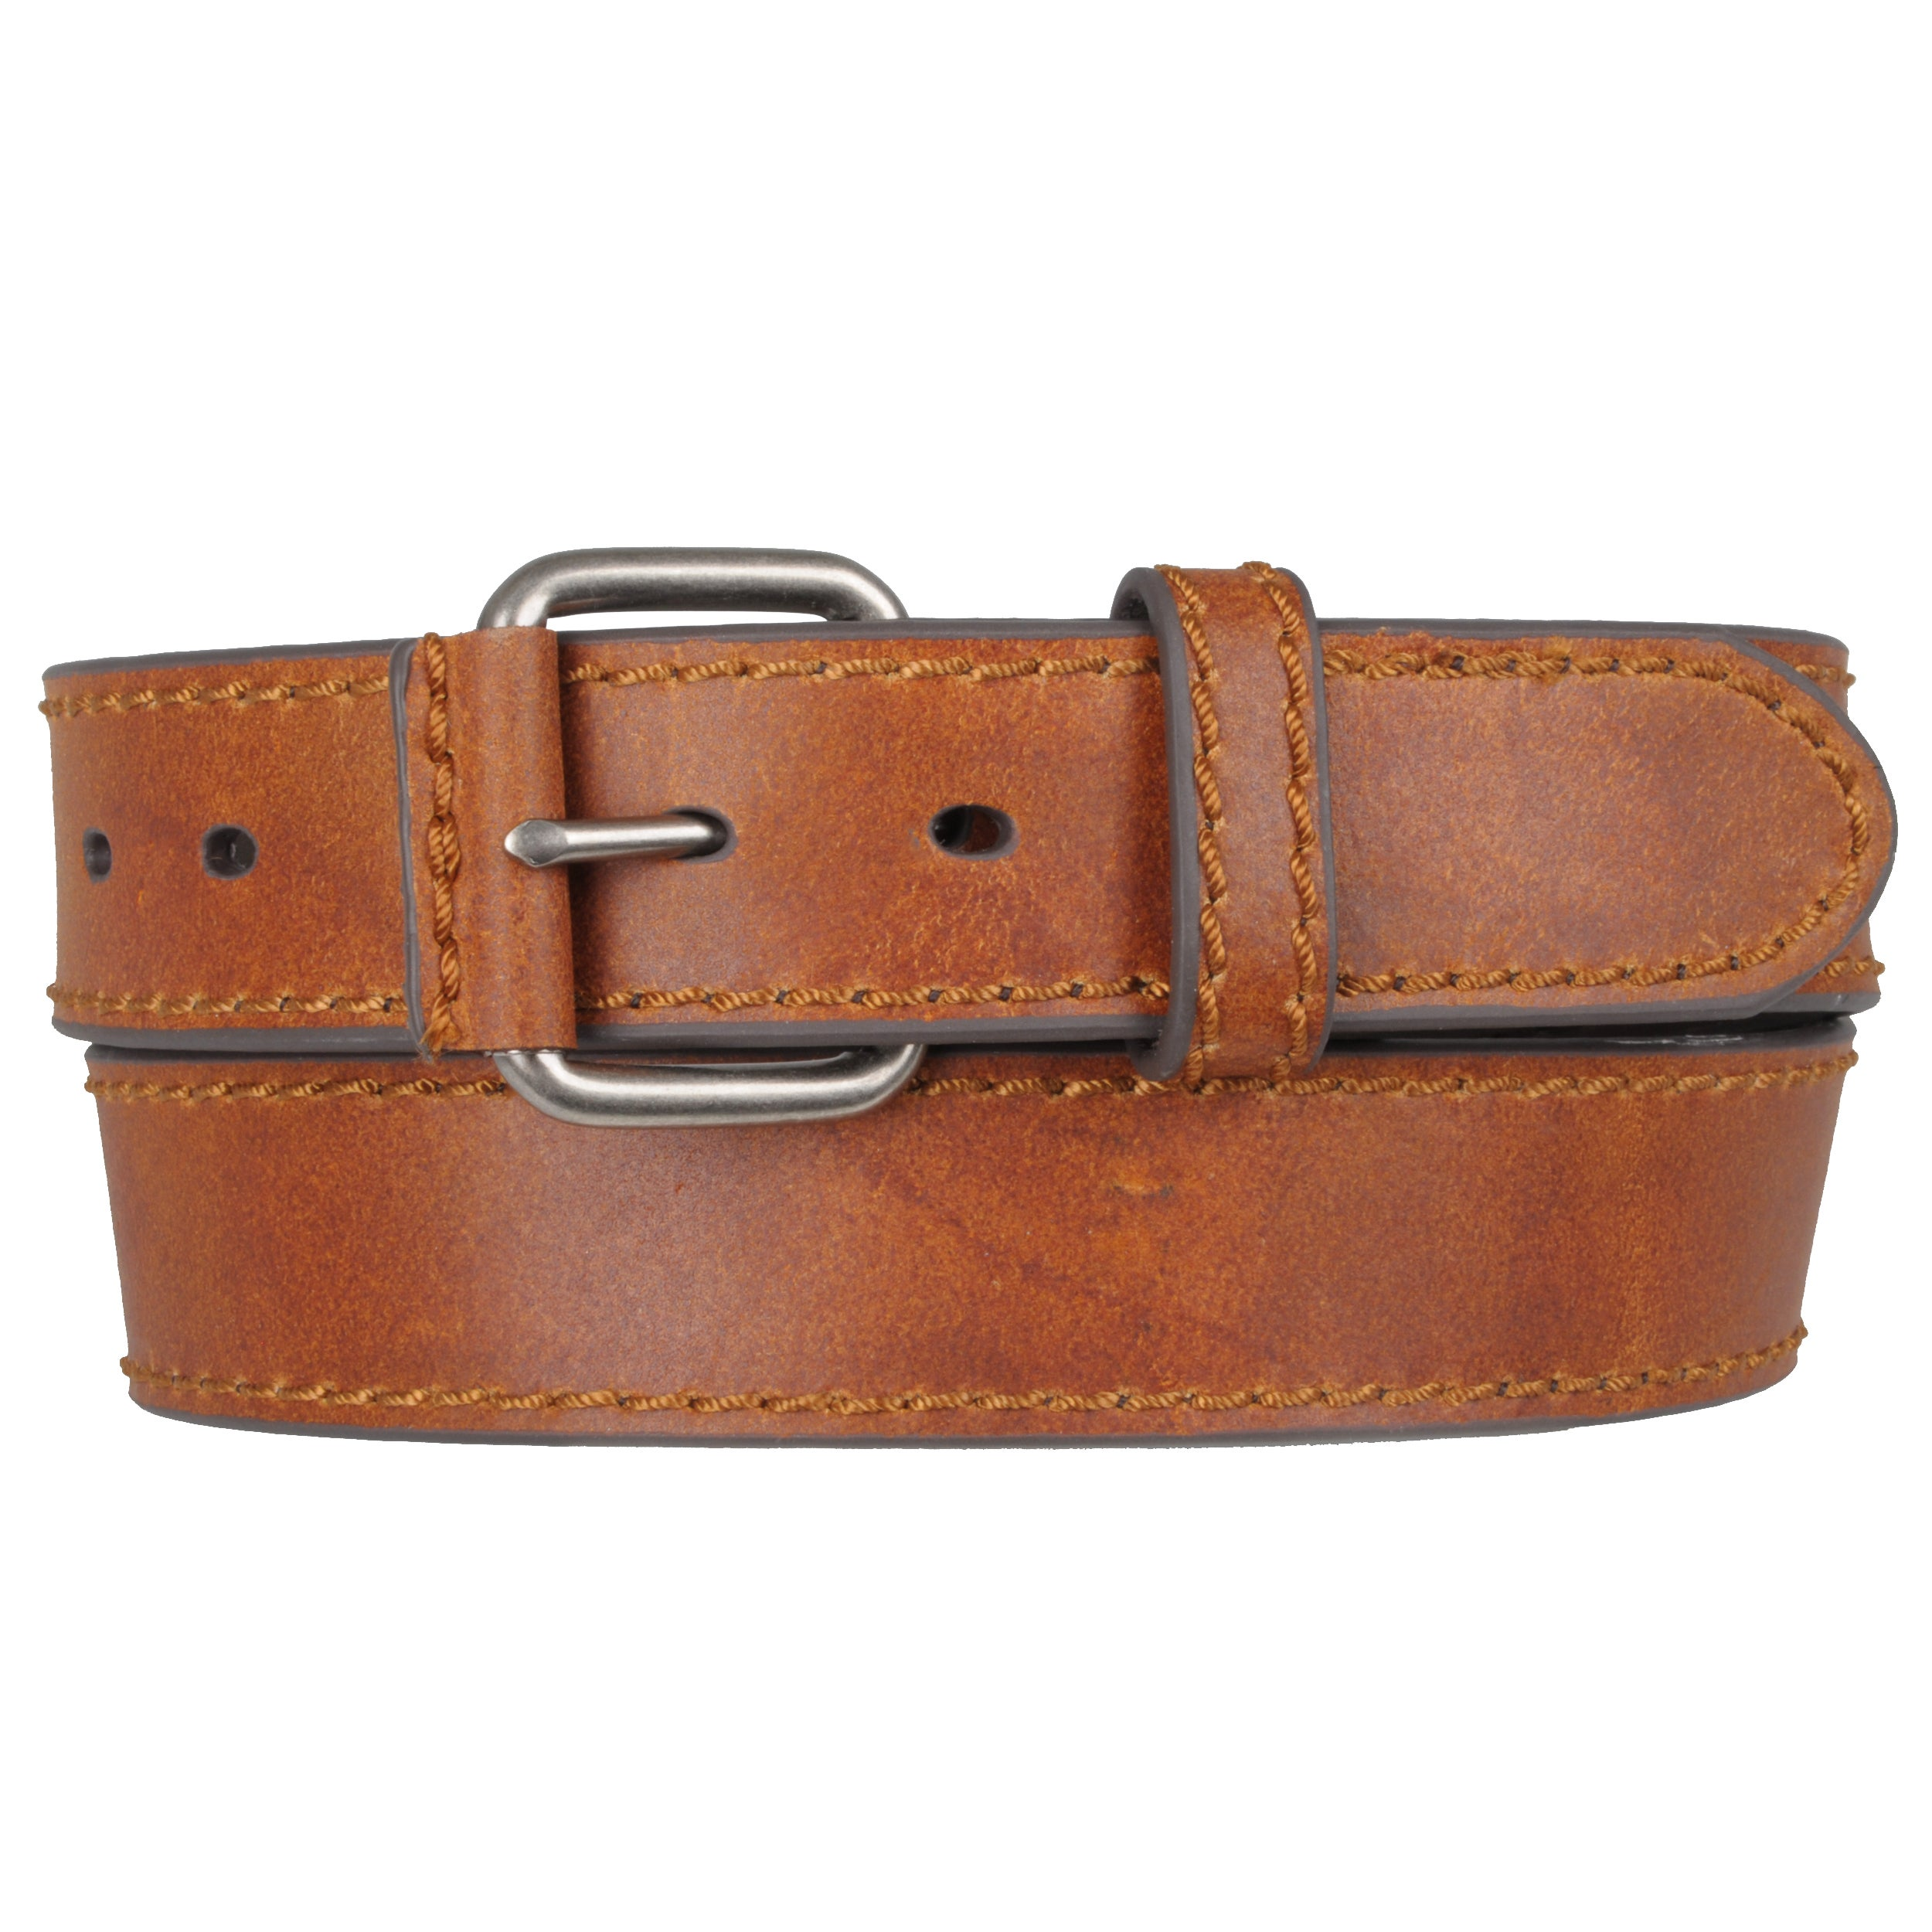 Boston Traveler Men's Topstitched Black/Tan Leather Belt